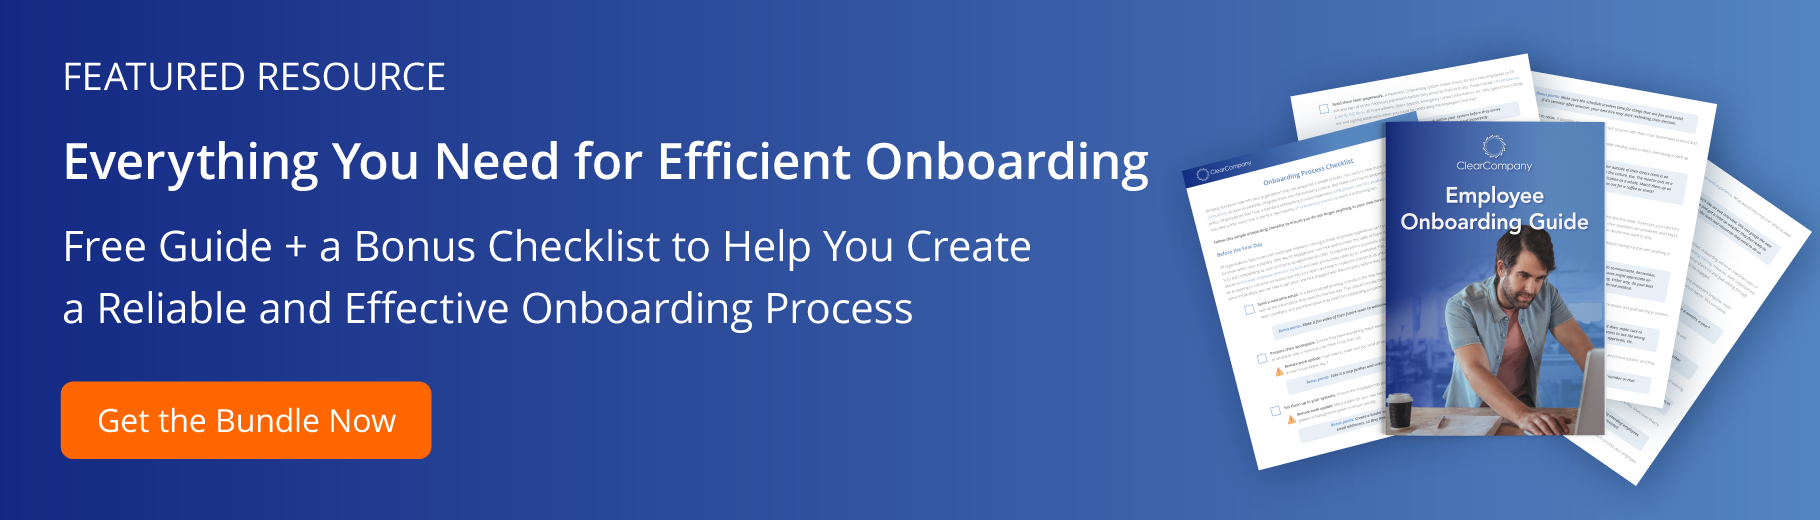 onboarding-guide-and-resource-bundle-for-efficient-onboarding